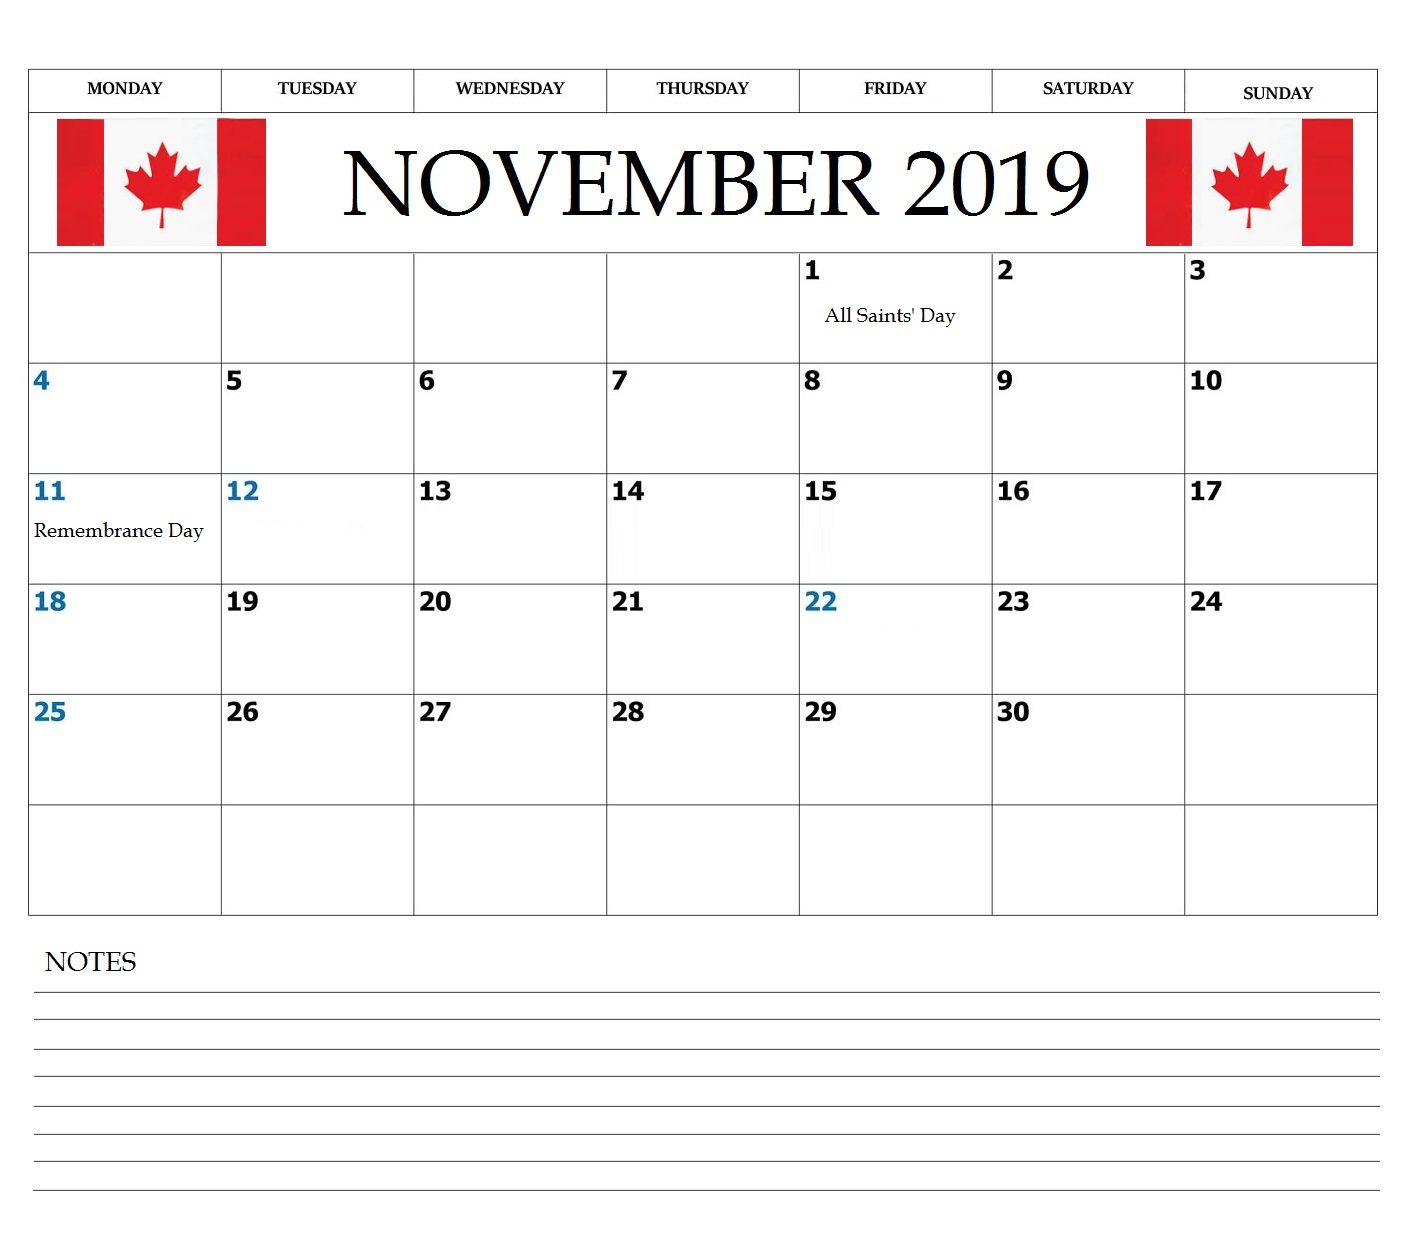 Canada November 2019 Bank Holidays Calendar